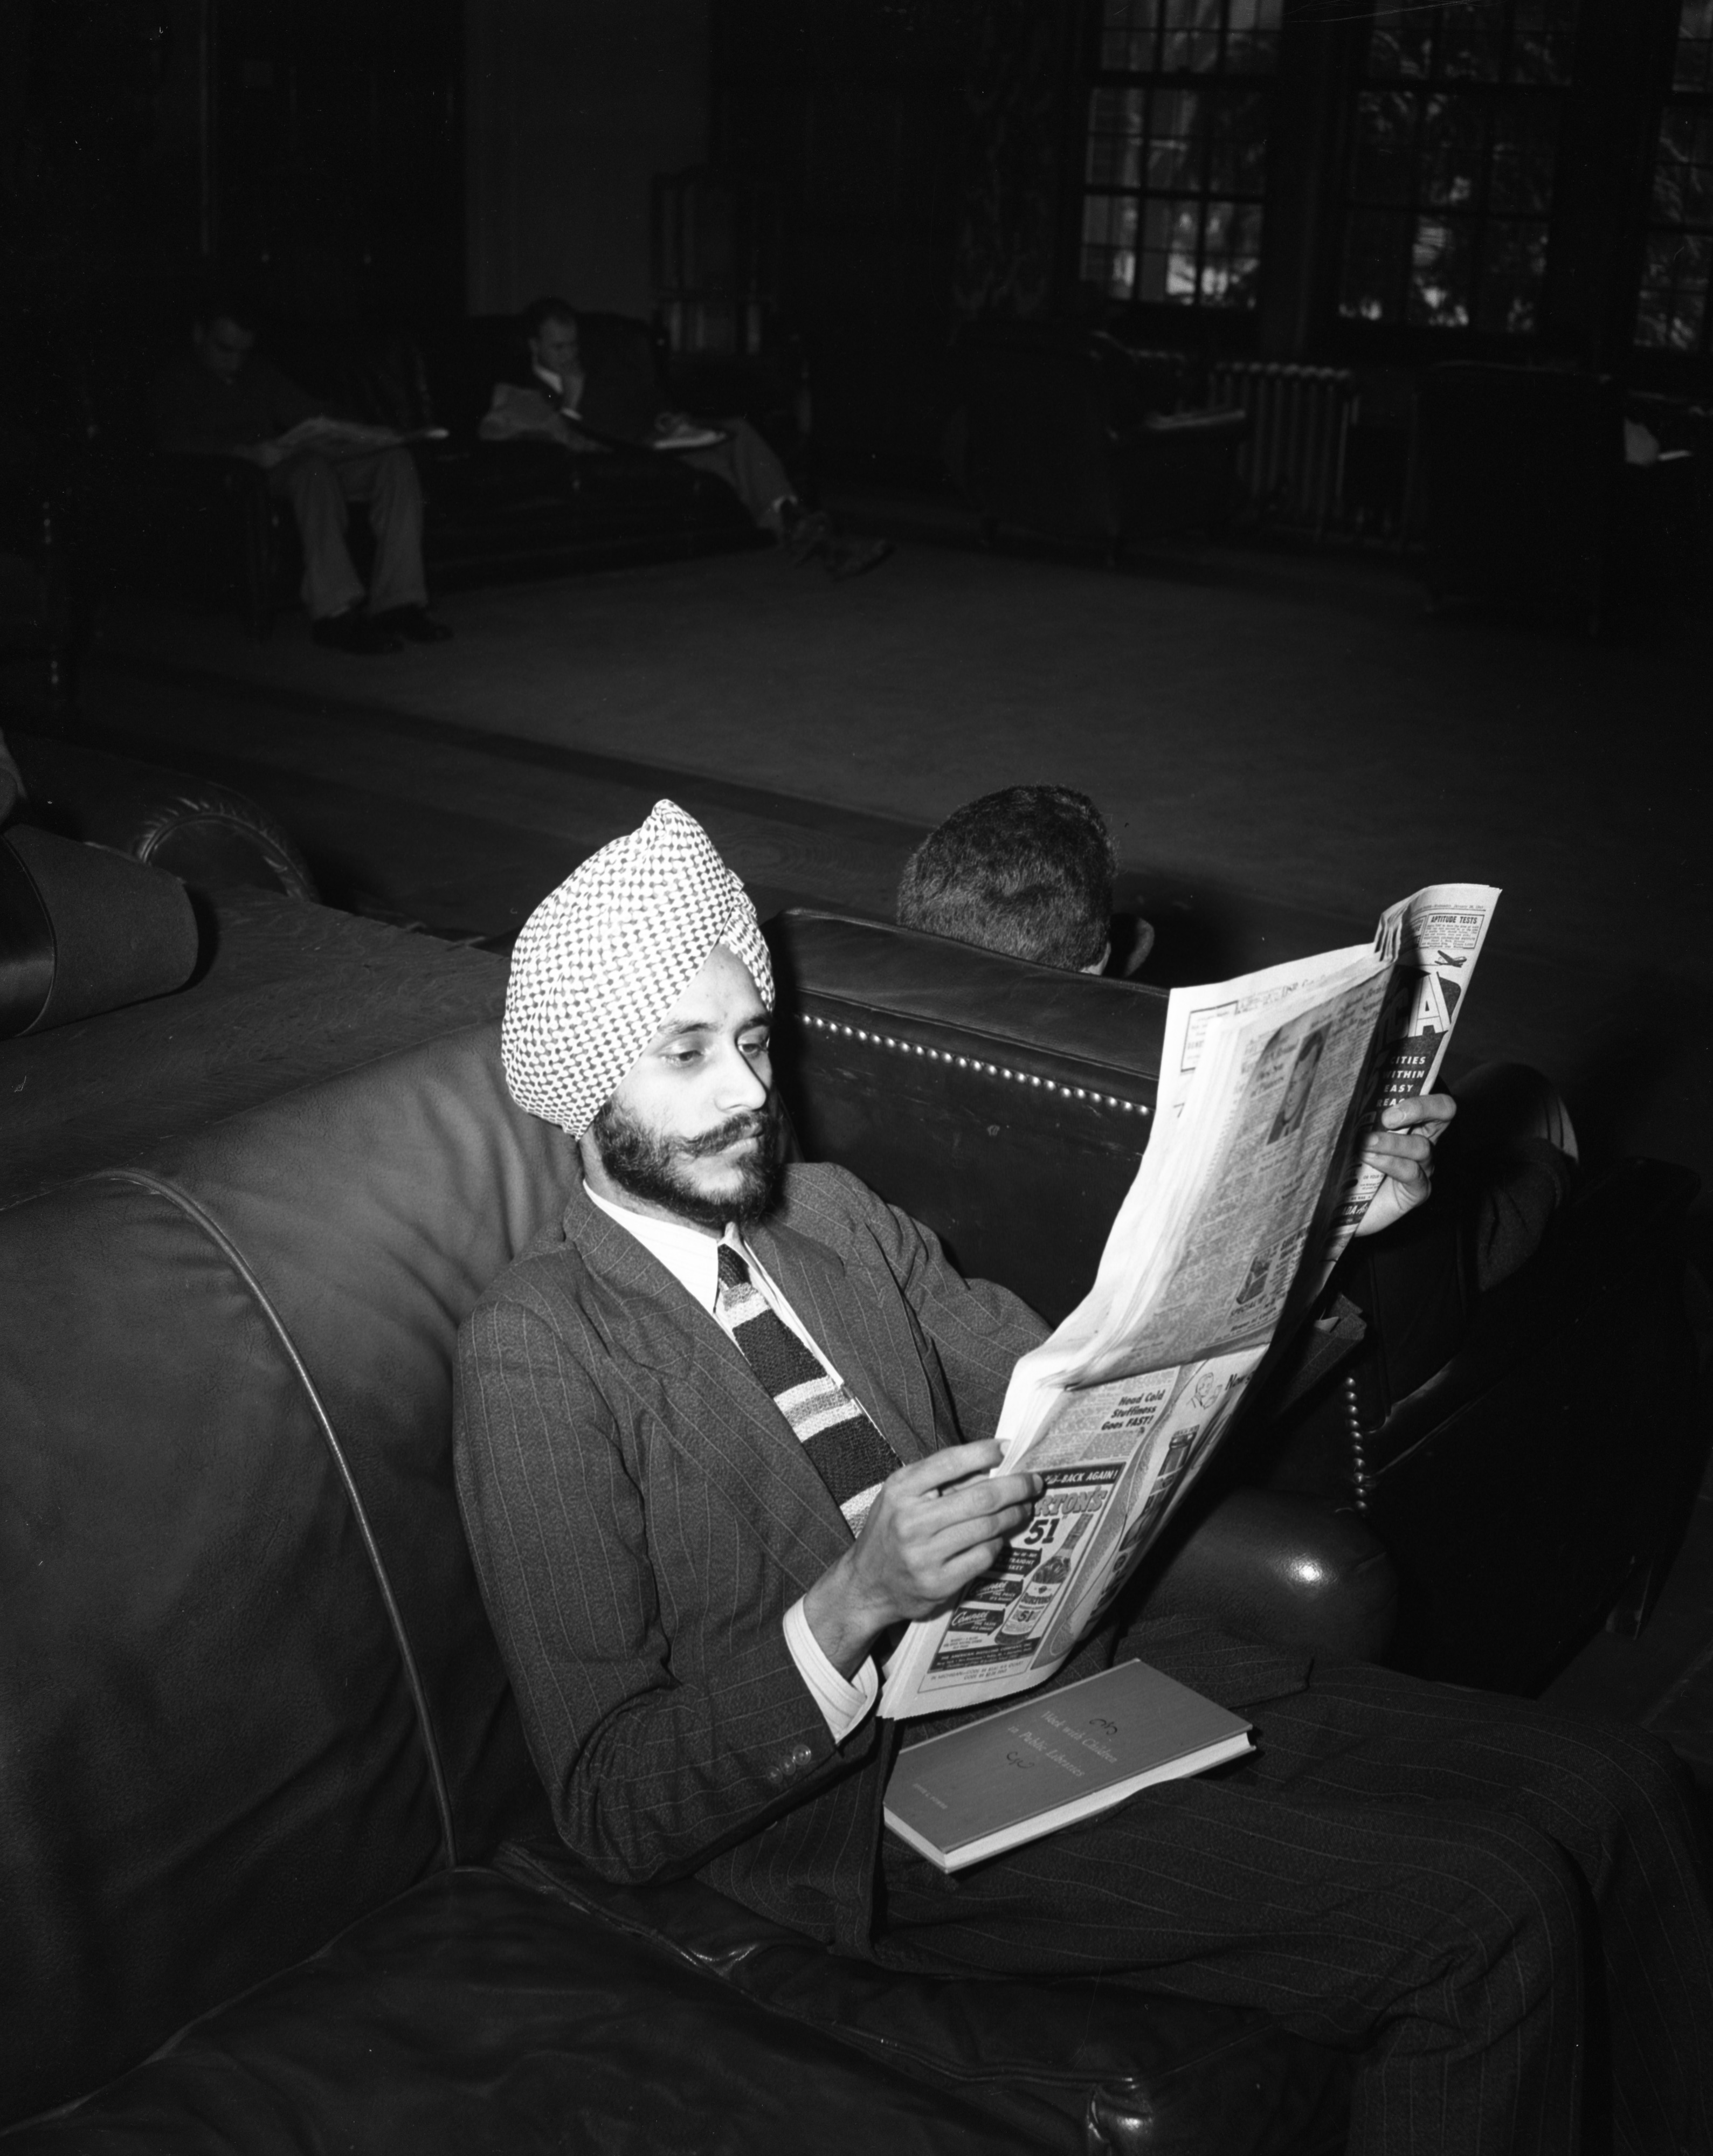 Student From India Reading Newspaper In Michigan Union, February 1949 image